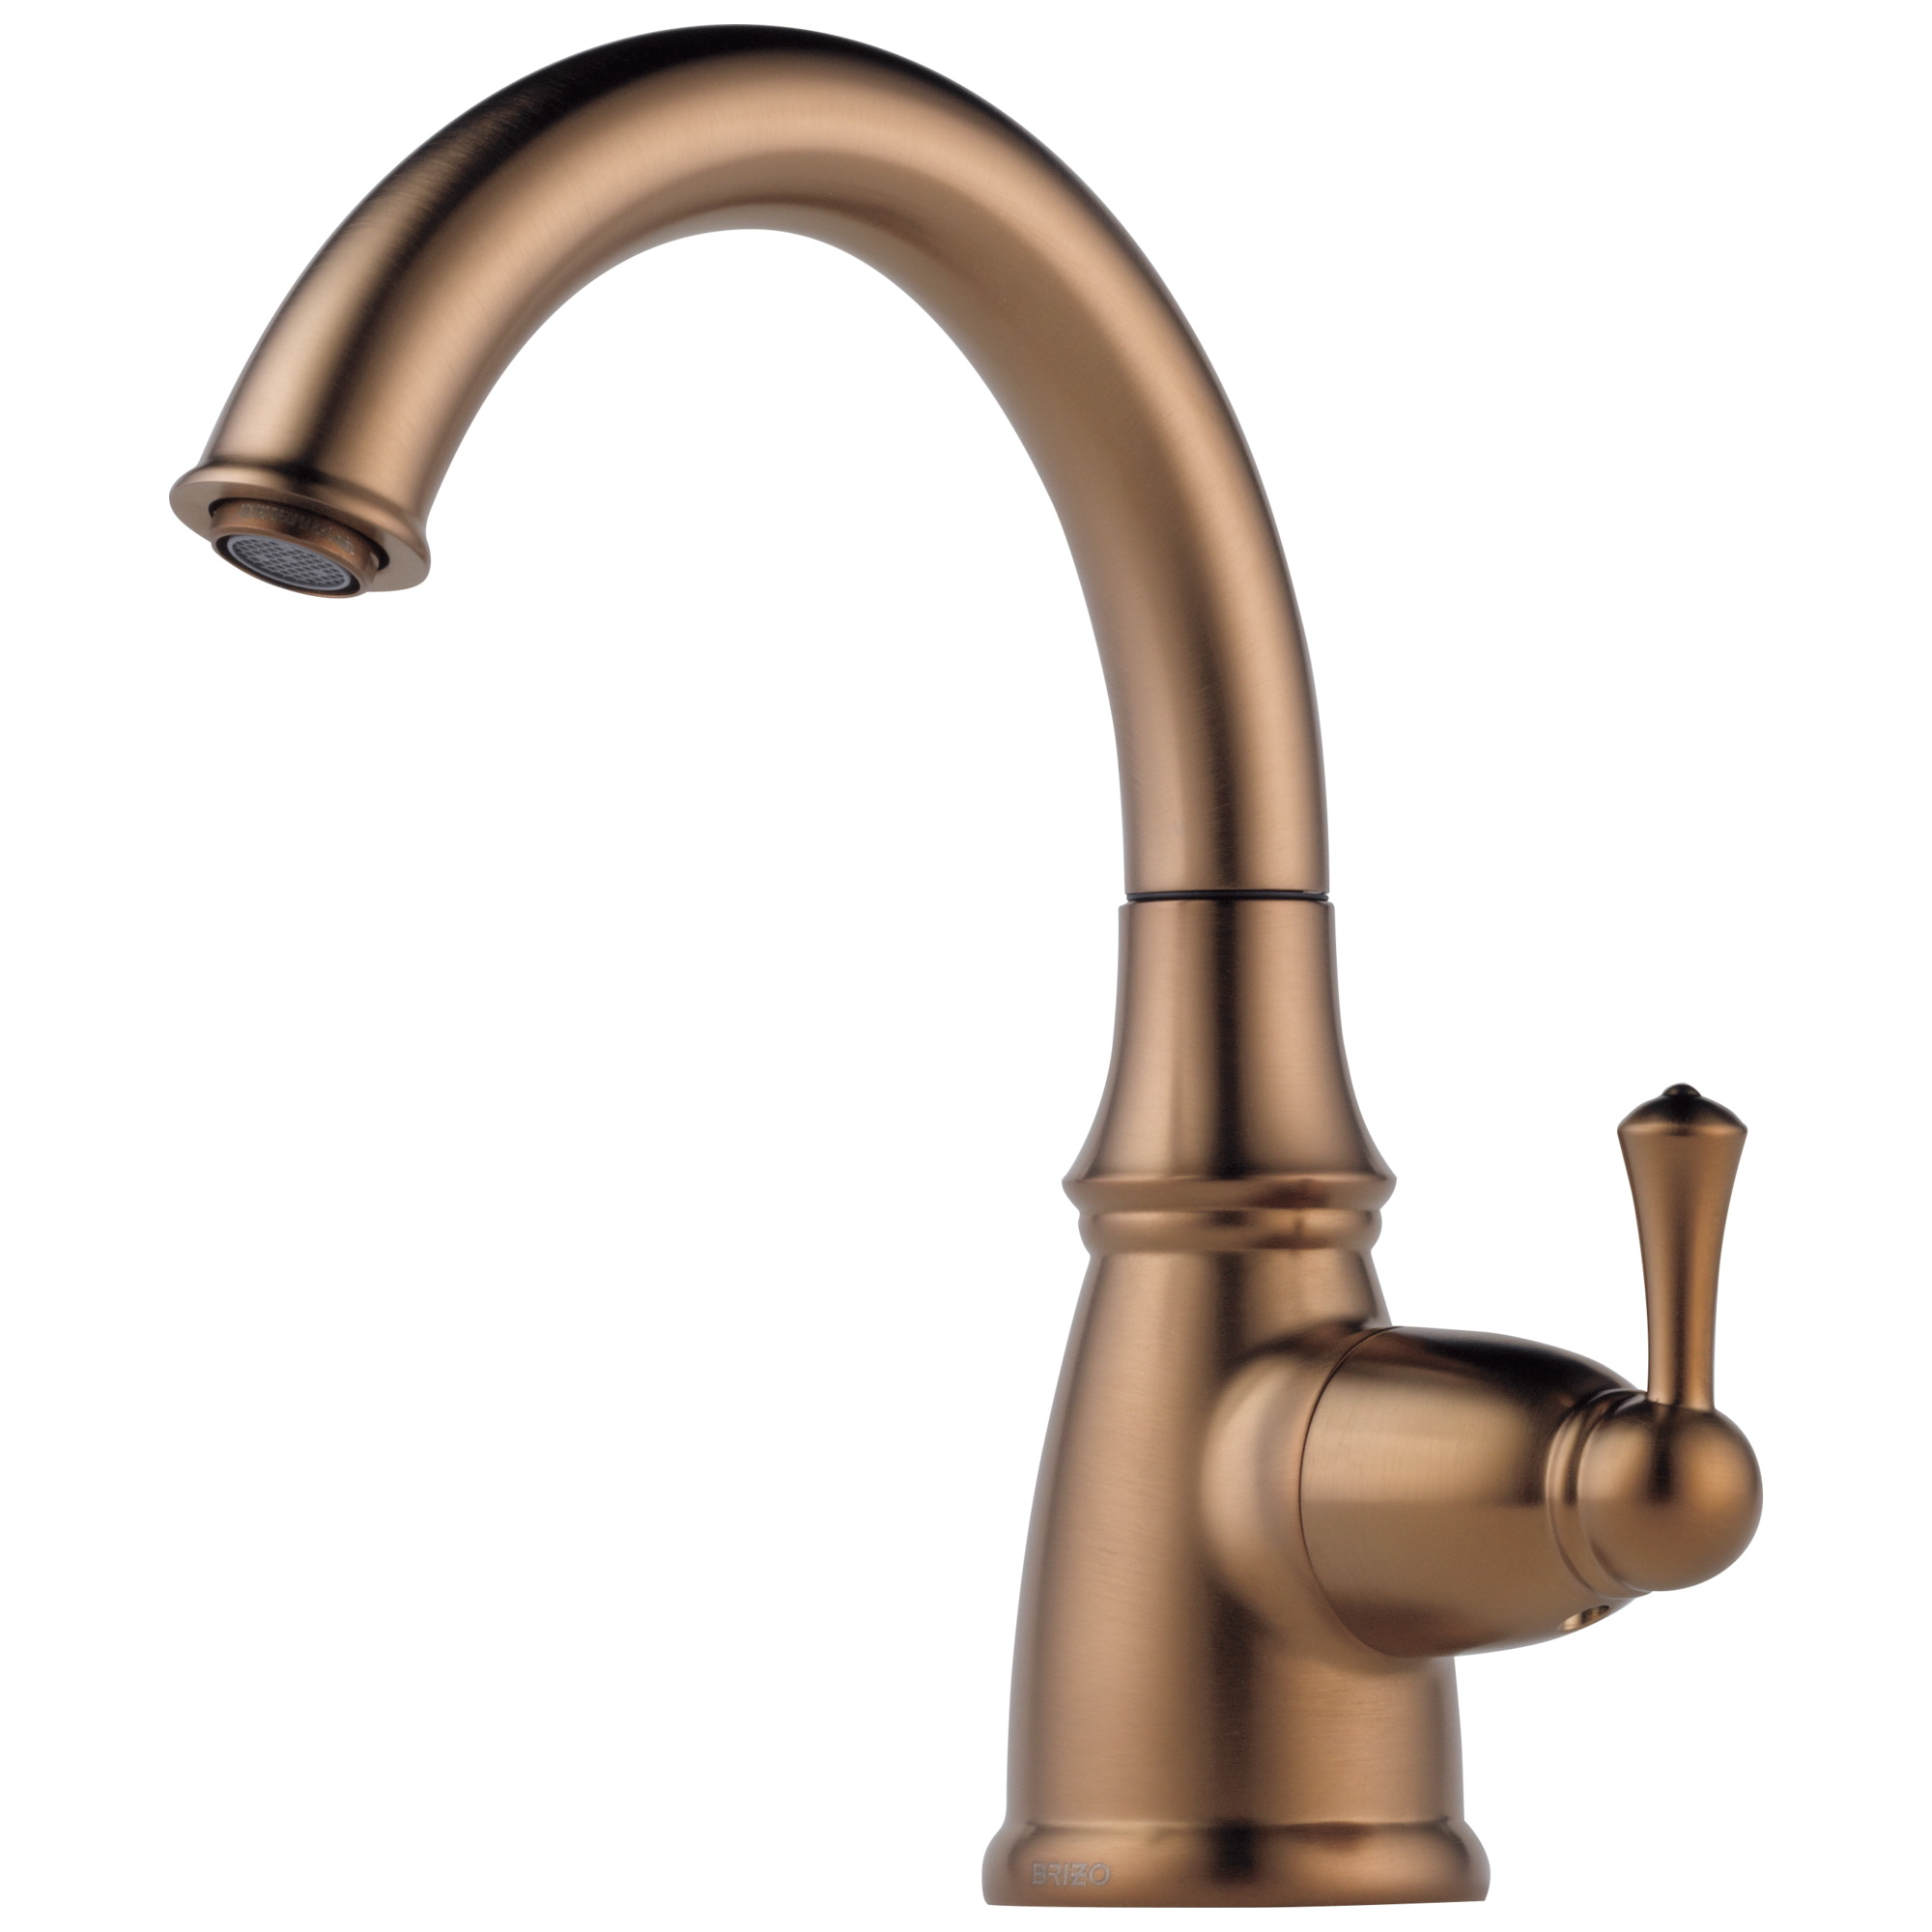 Brizo® 61310LF-BZ Traditional Beverage Faucet, 1.5 gpm, 1 Handle, Brilliance® Brushed Bronze, Domestic